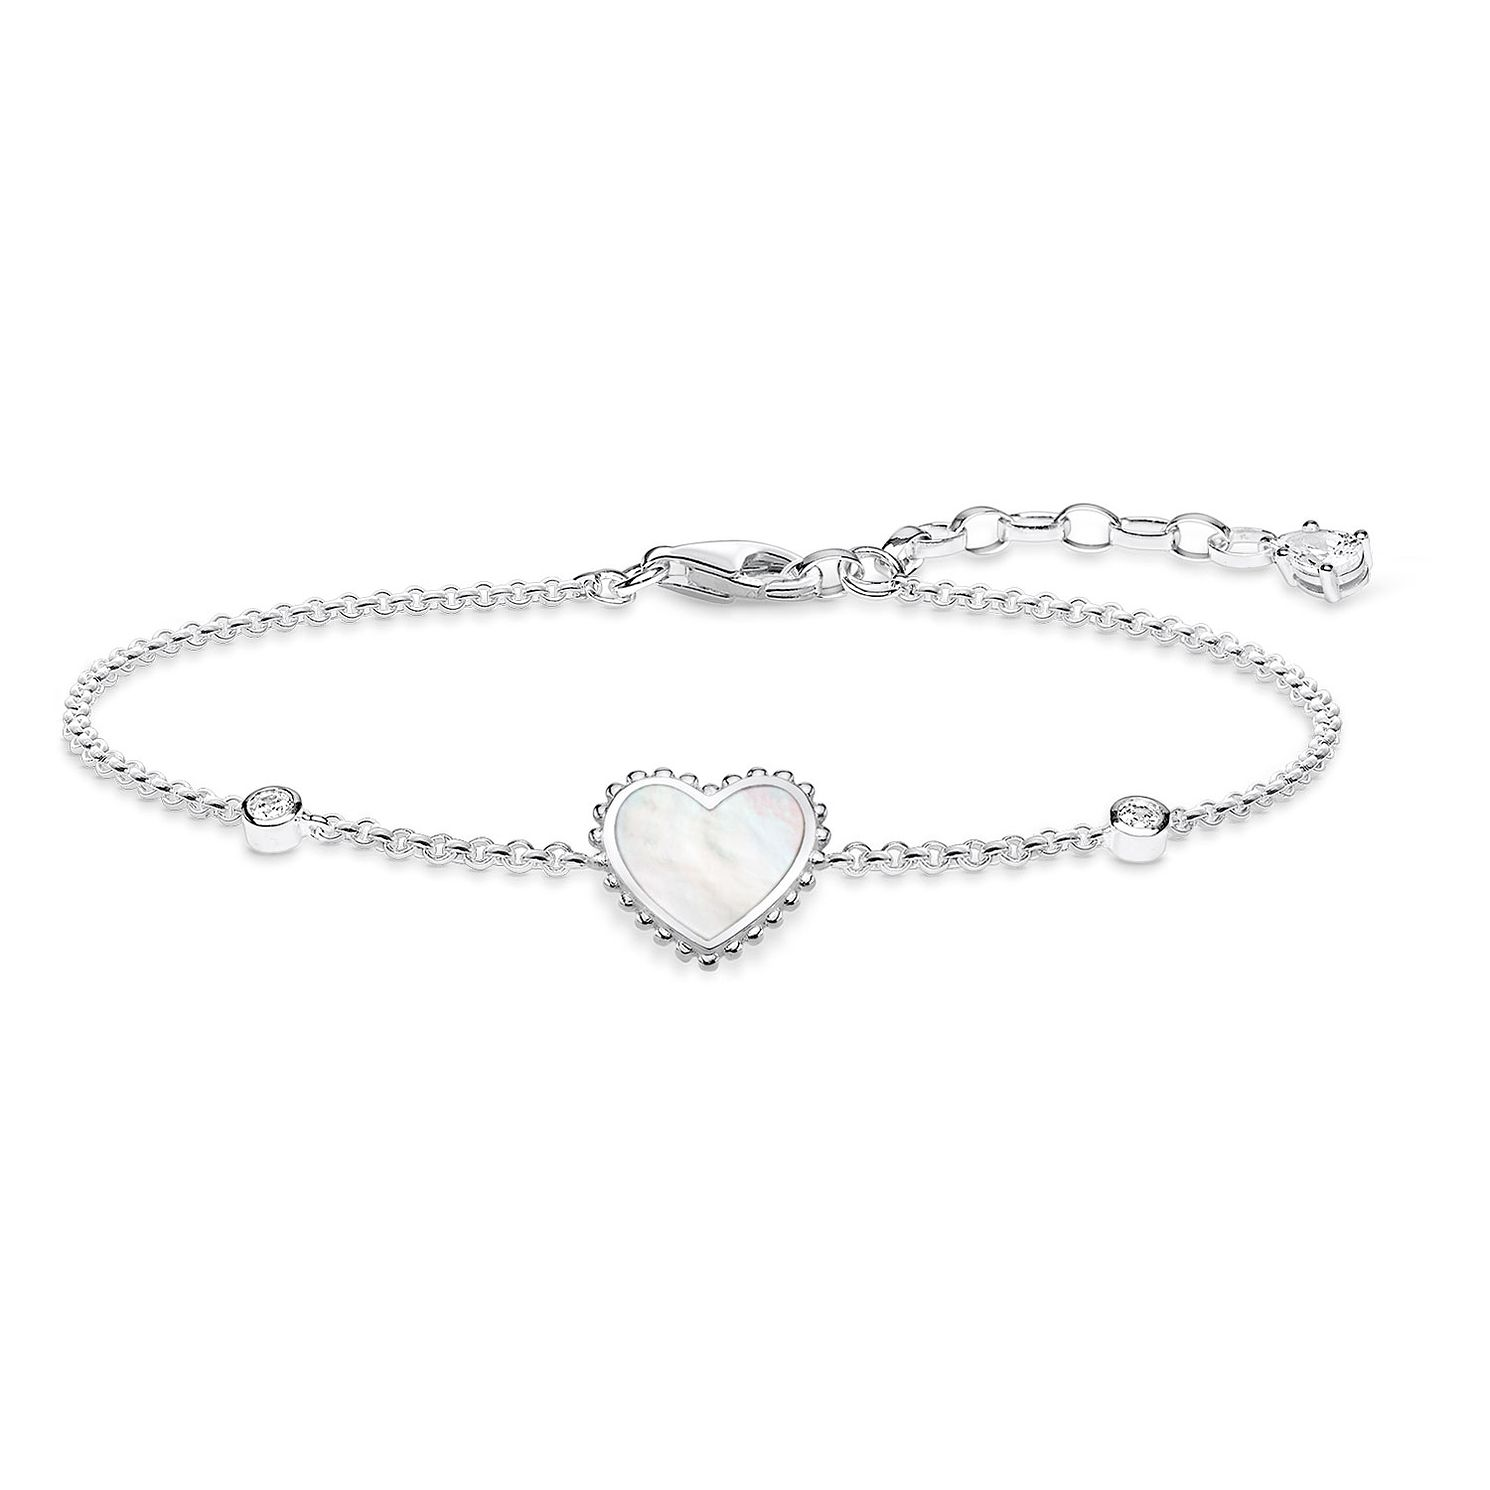 Thomas Sabo Glam Ladies' Heart Mother Of Pearl Bracelet - Product number 4470931